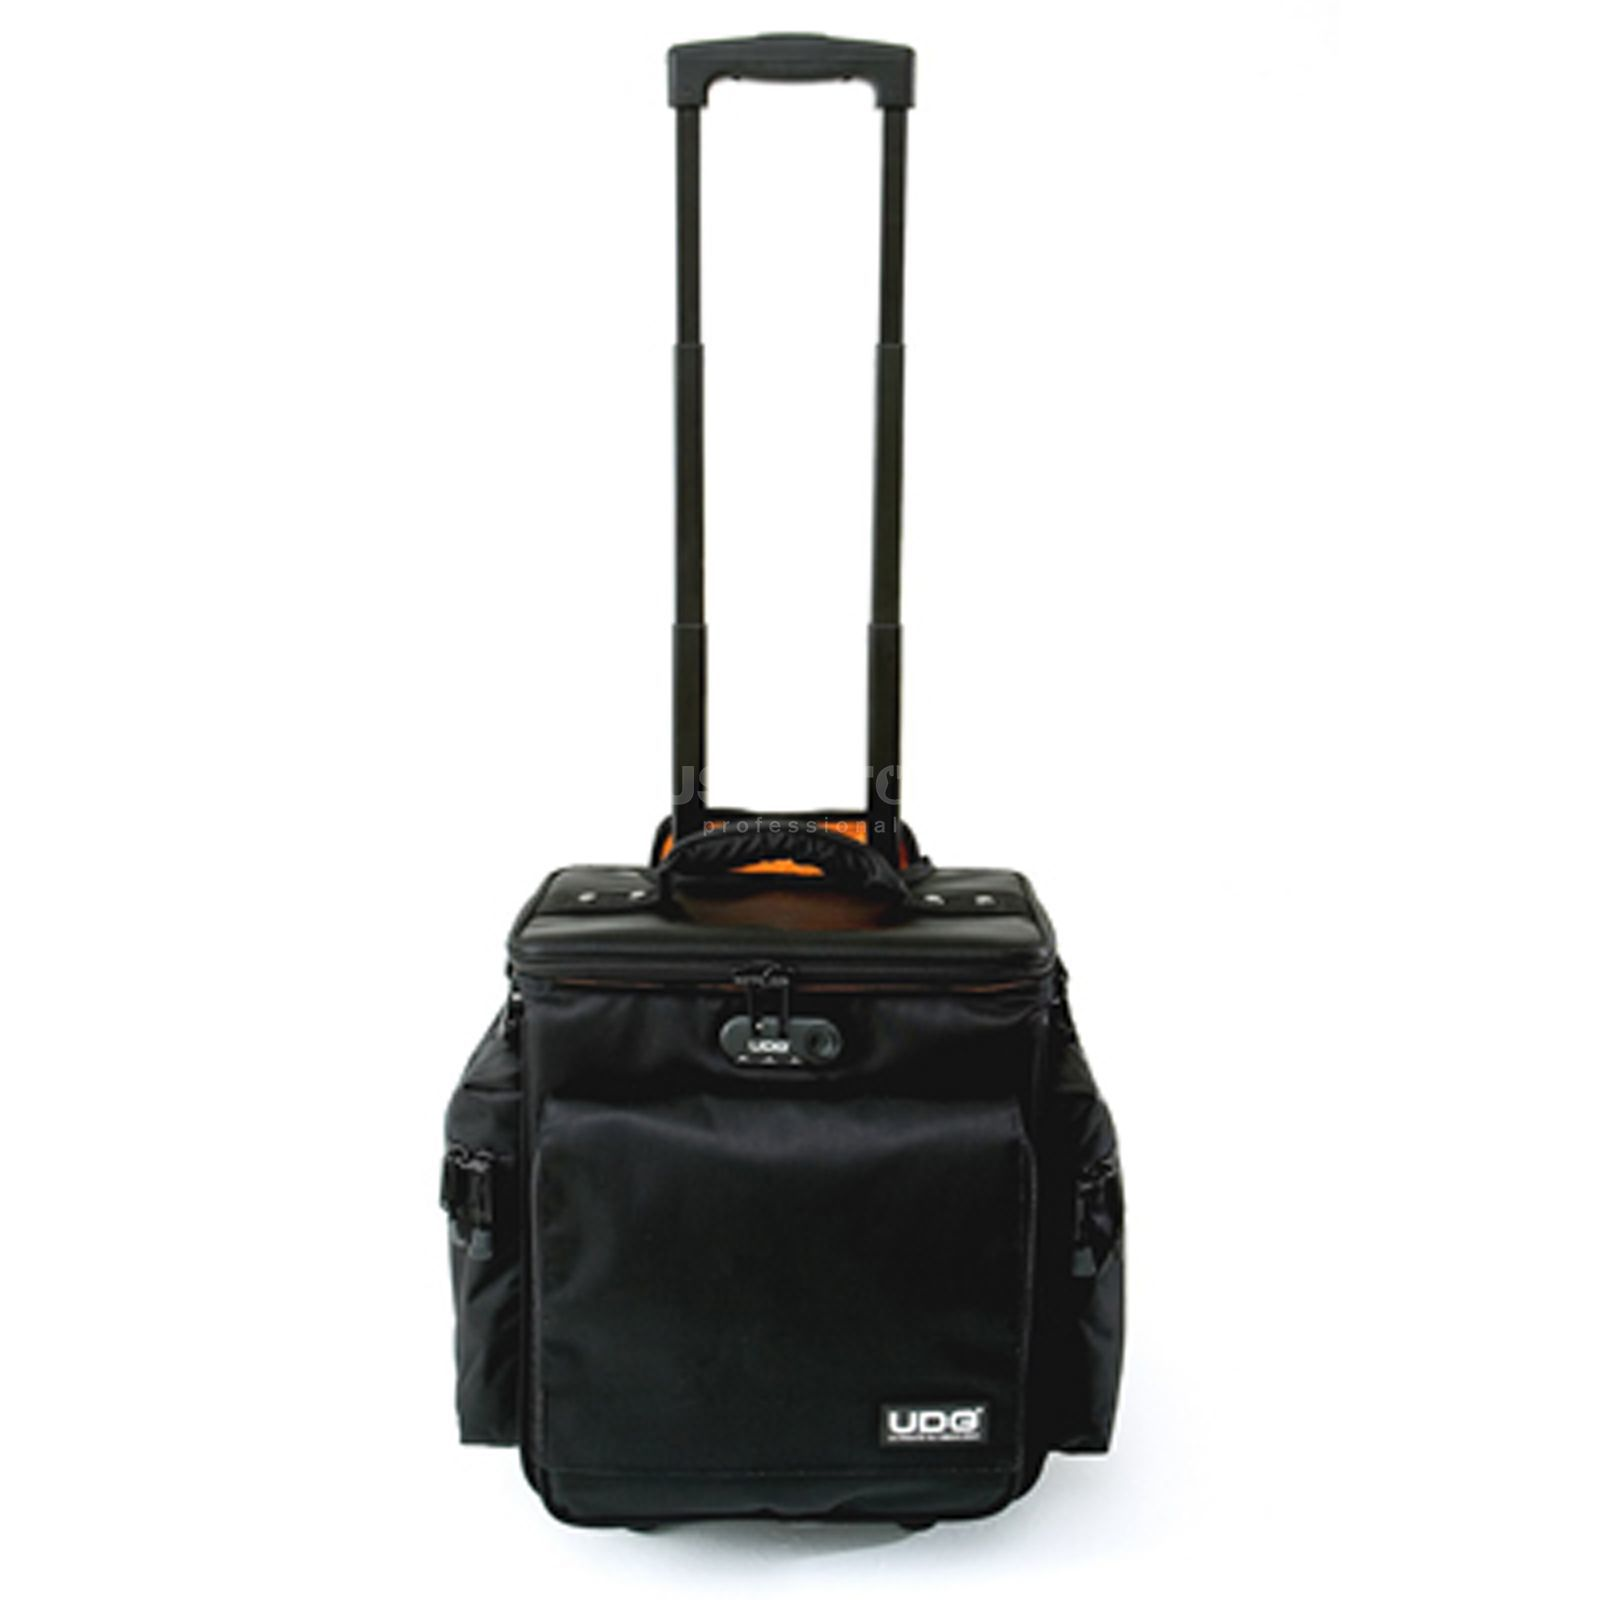 UDG SlingBag Trolley Deluxe Black U9981BL Product Image